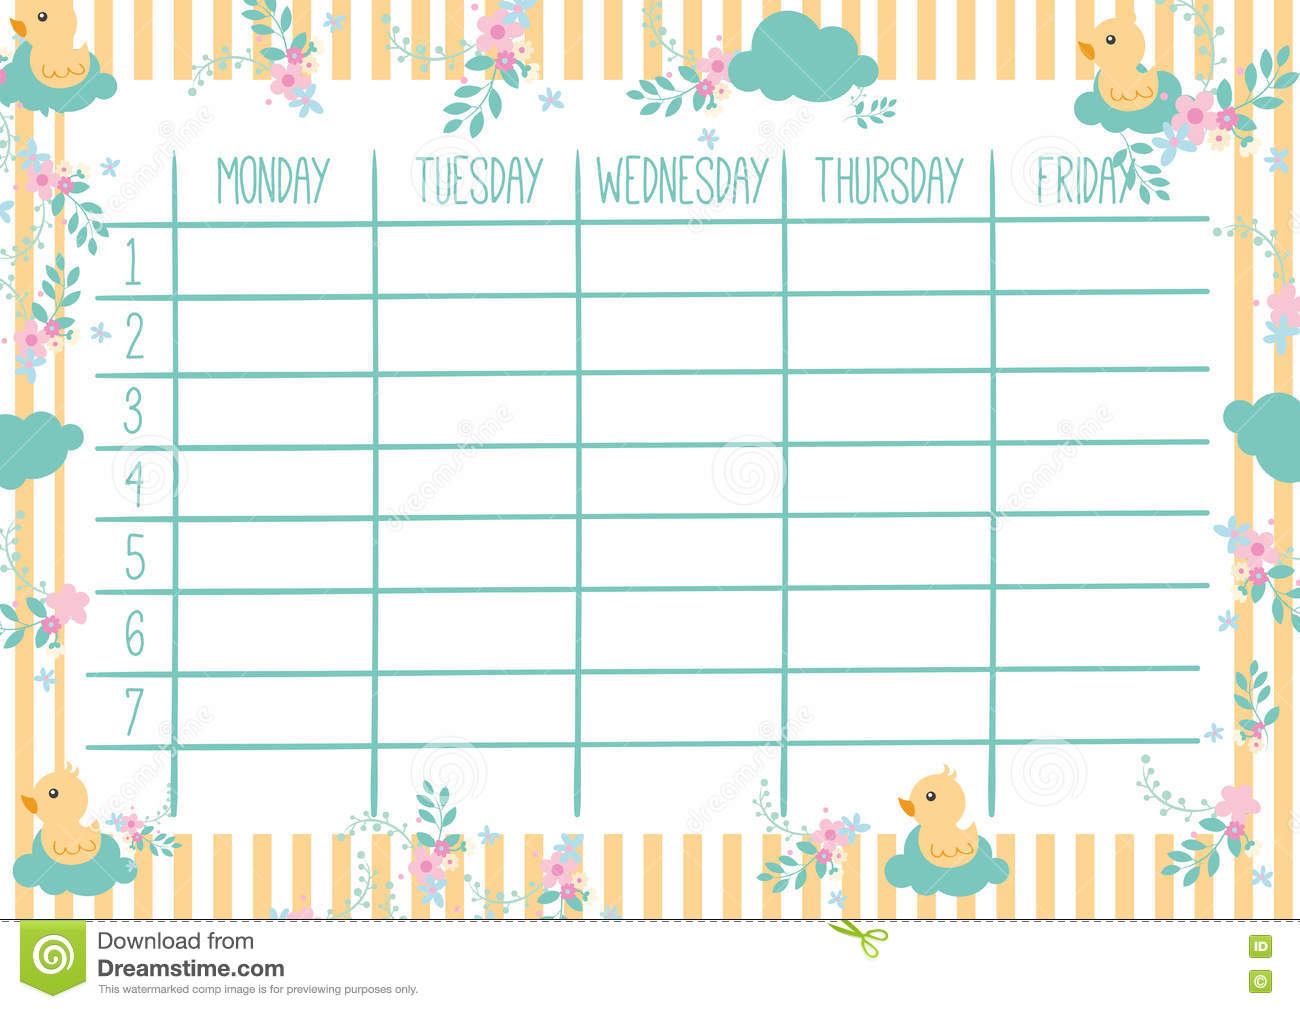 Cute Weekly Calendar Template : Cute weekly planner stock vector illustration of plan